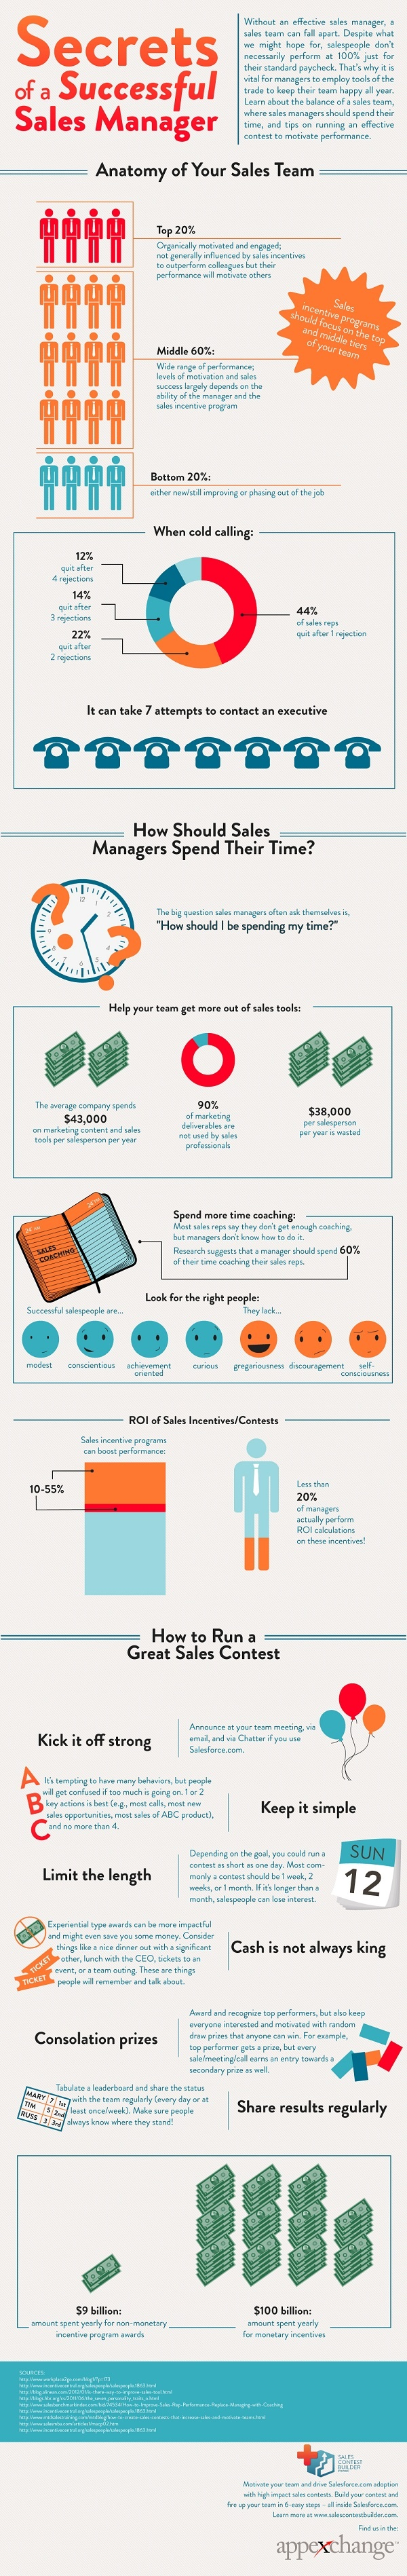 infographic-secretsofsuccessfulsalesmanager_600px-widejpg.jpg